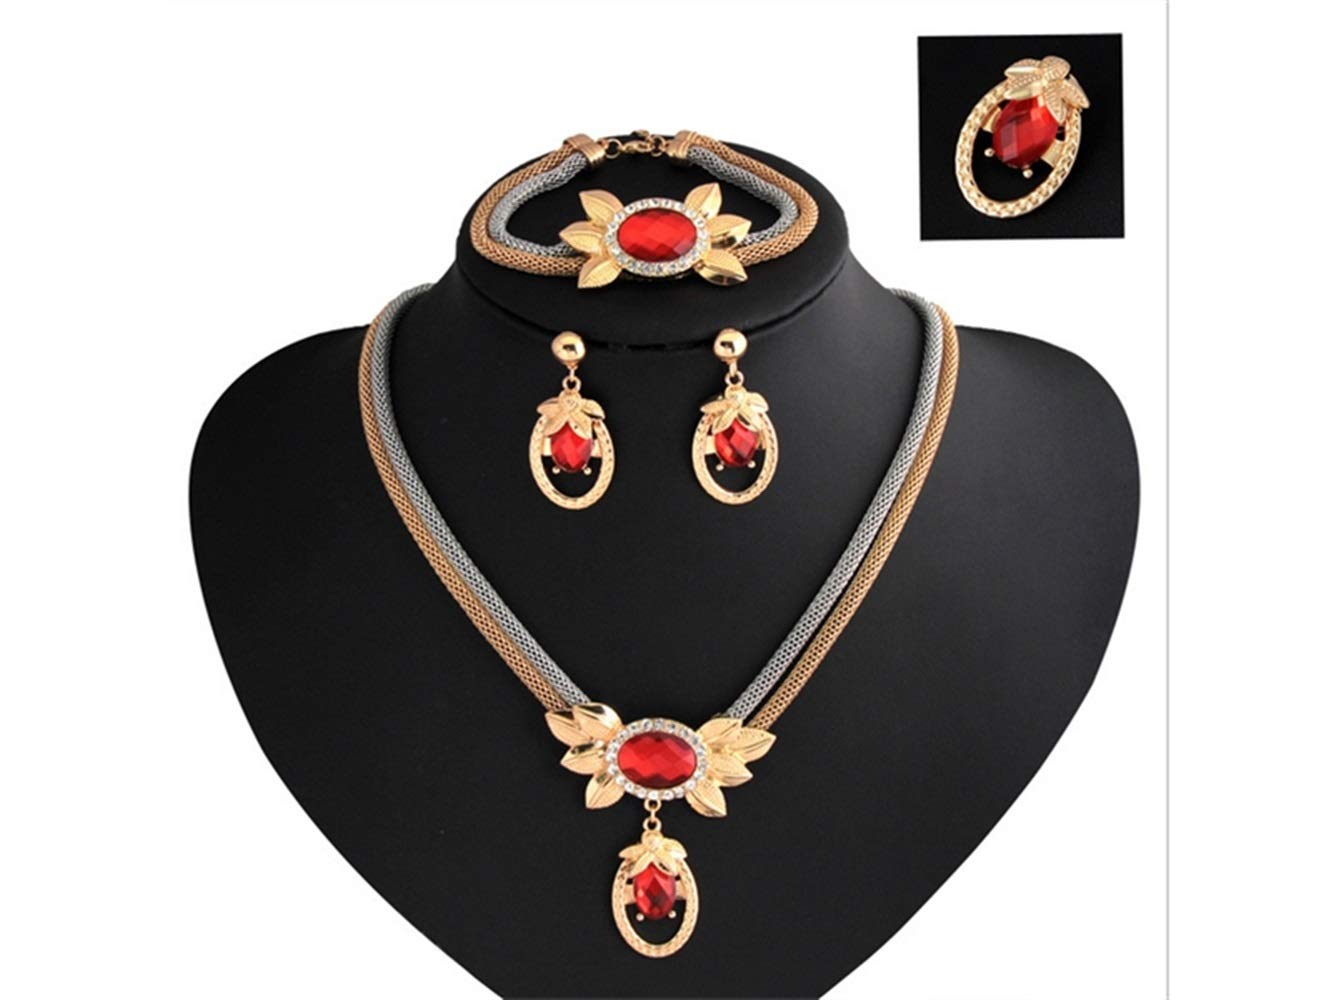 Yuchoi Girl Jewelry Retro Clavicle Necklace Earrings Necklace